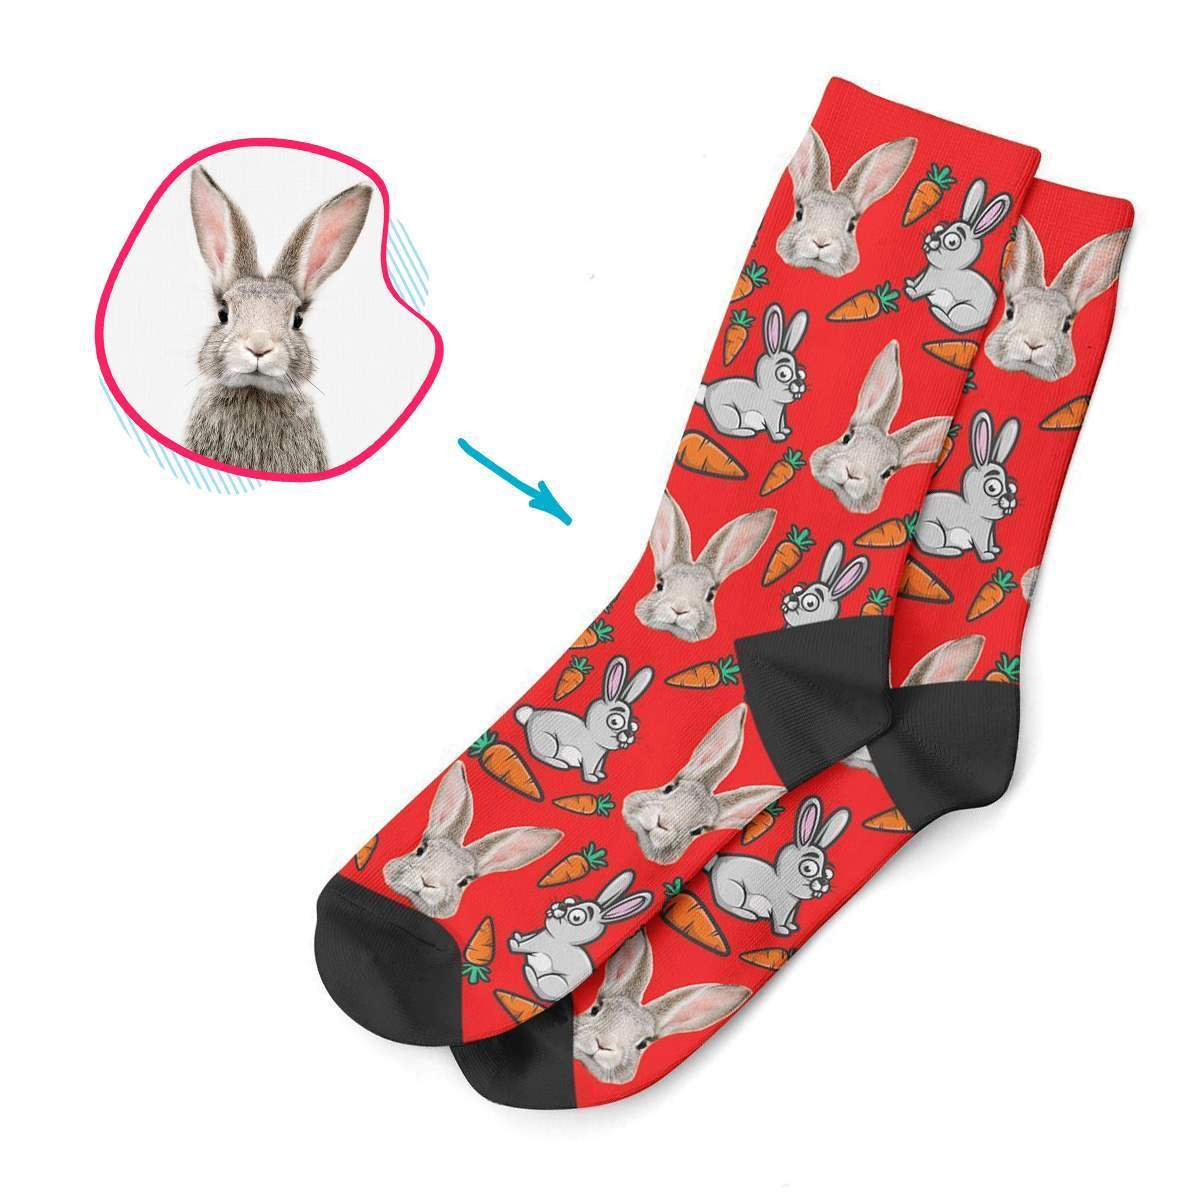 red Bunny socks personalized with photo of face printed on them